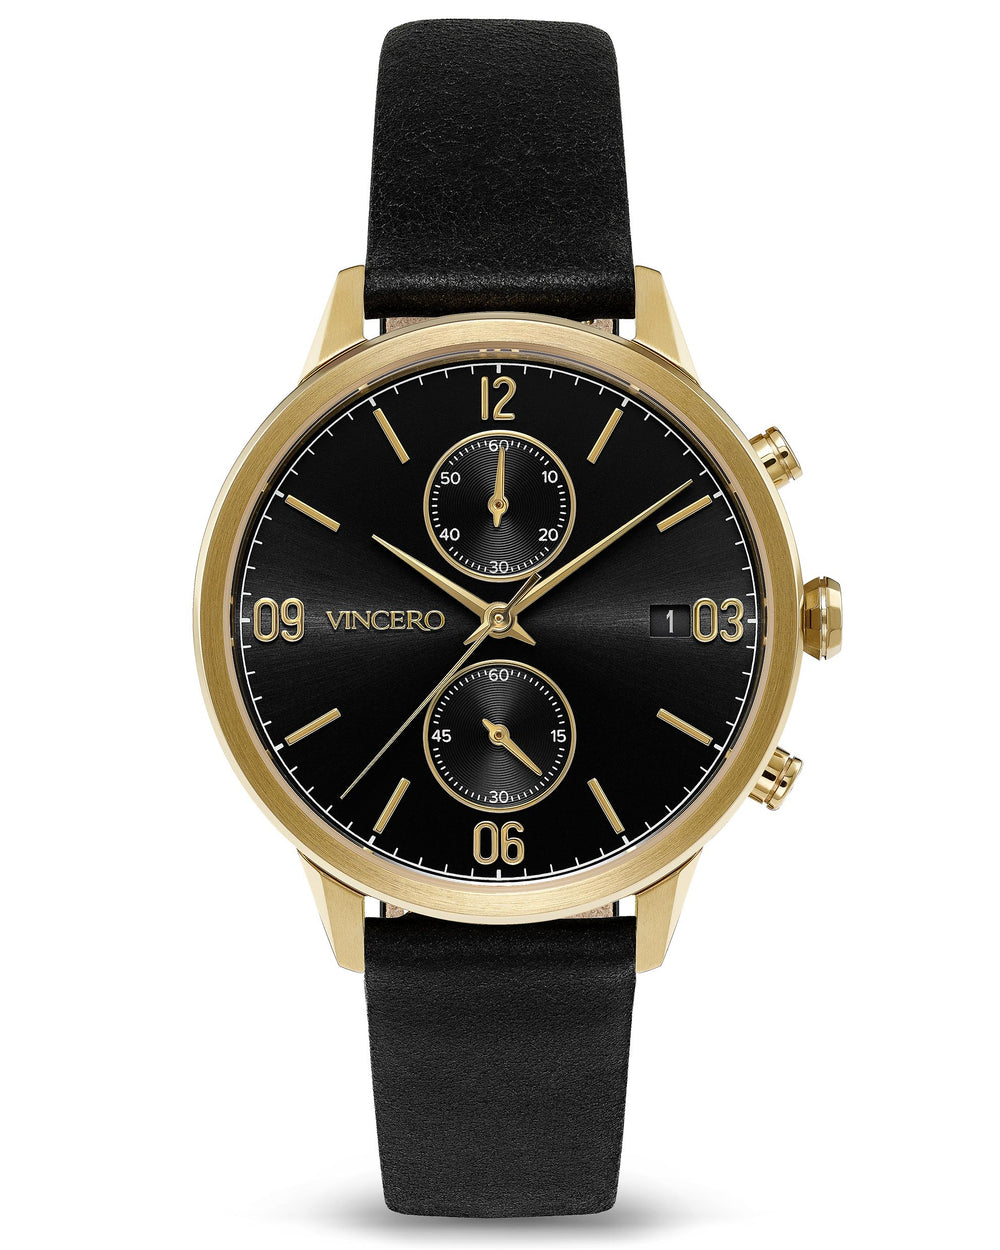 The Reign Jet Black Italian Leather Strap Black Watch Face Gold Case Clasp Rose Gold Accents